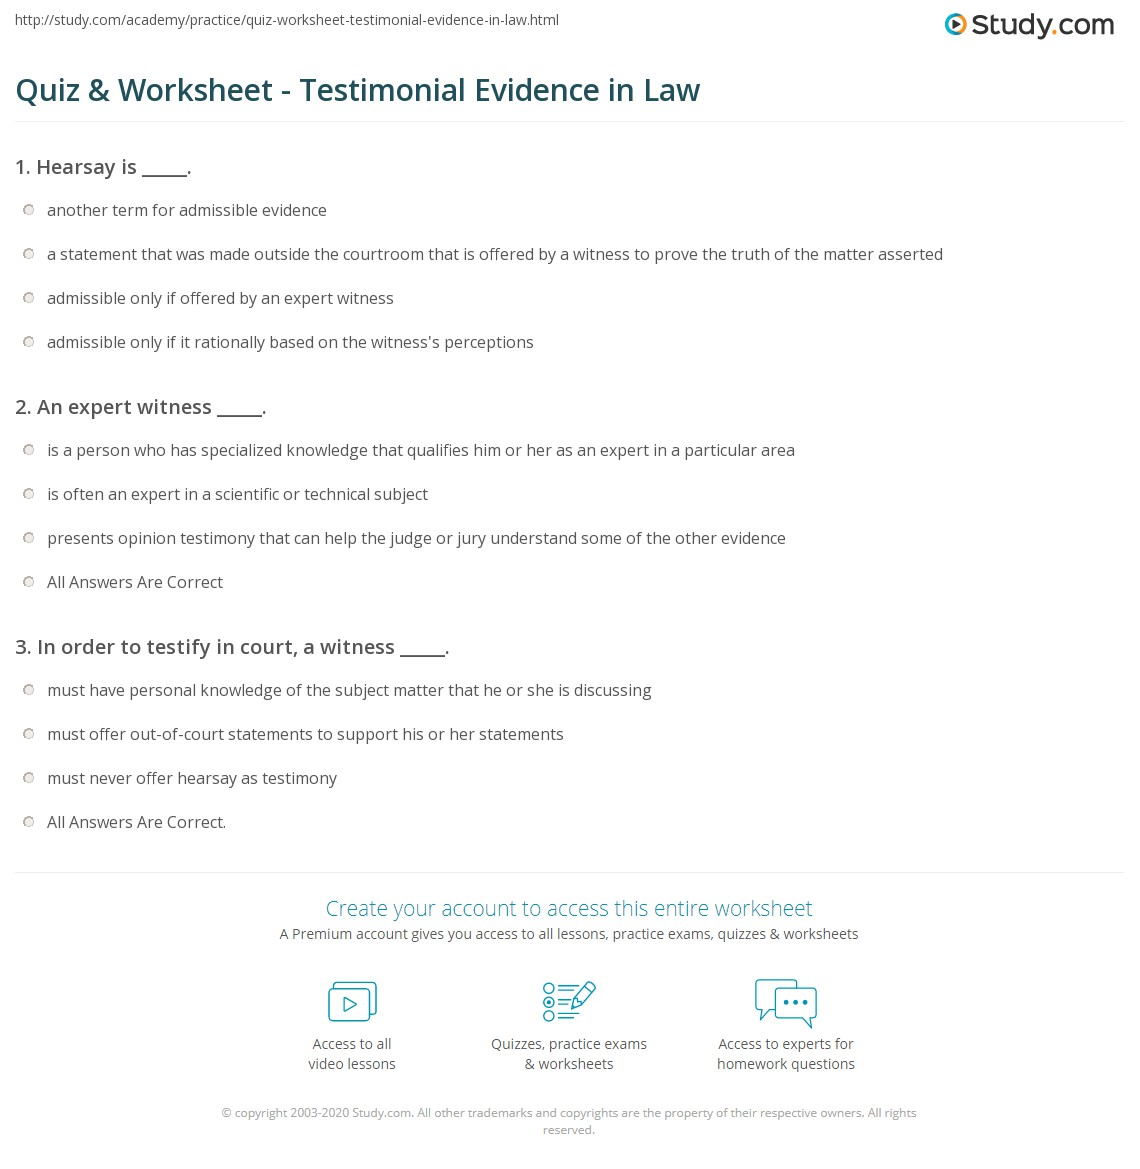 quiz & worksheet - testimonial evidence in law | study